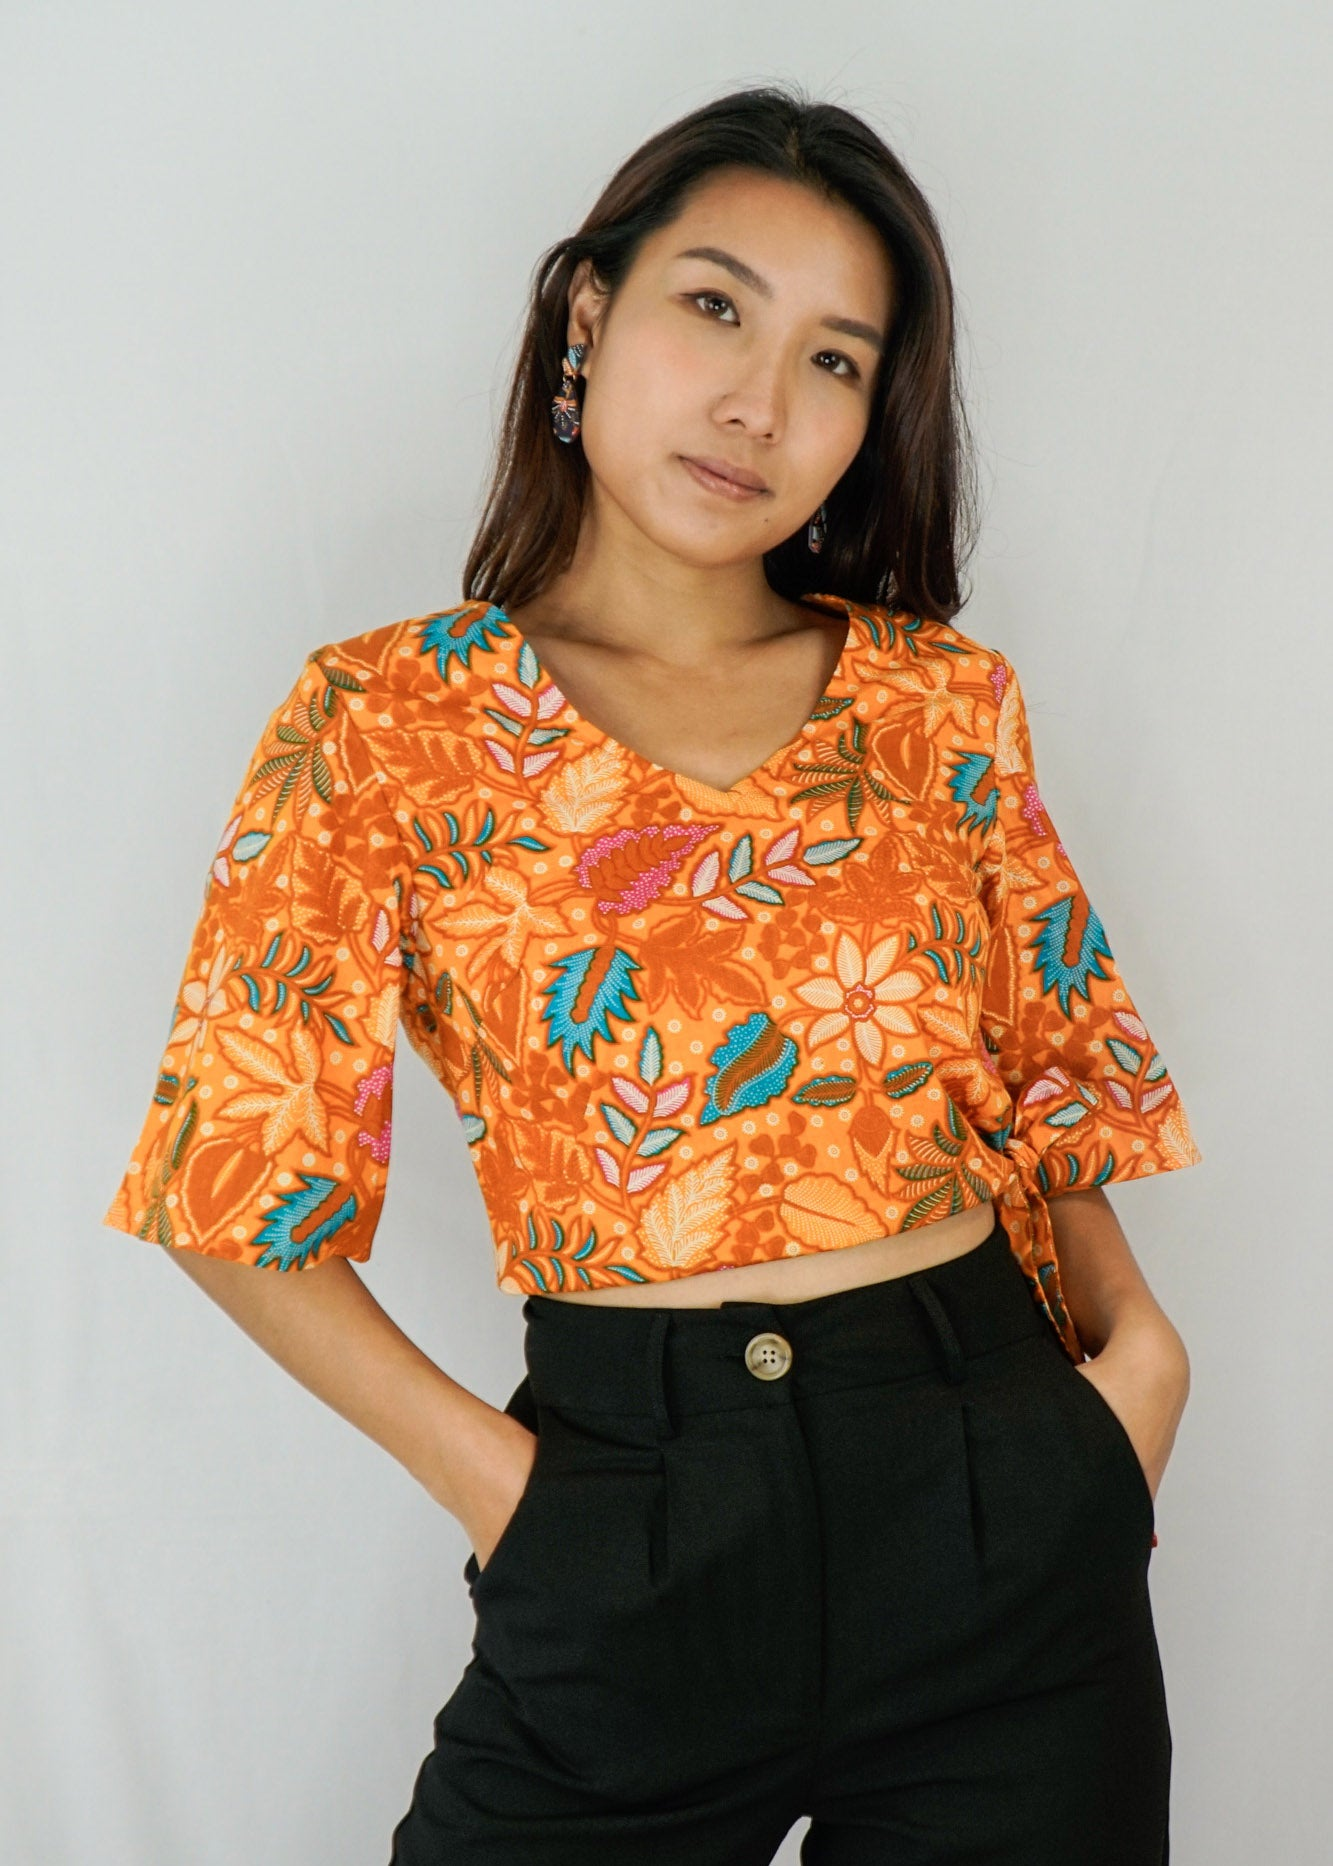 Tracy Flare Sleeves Top in Ferny Fantasy